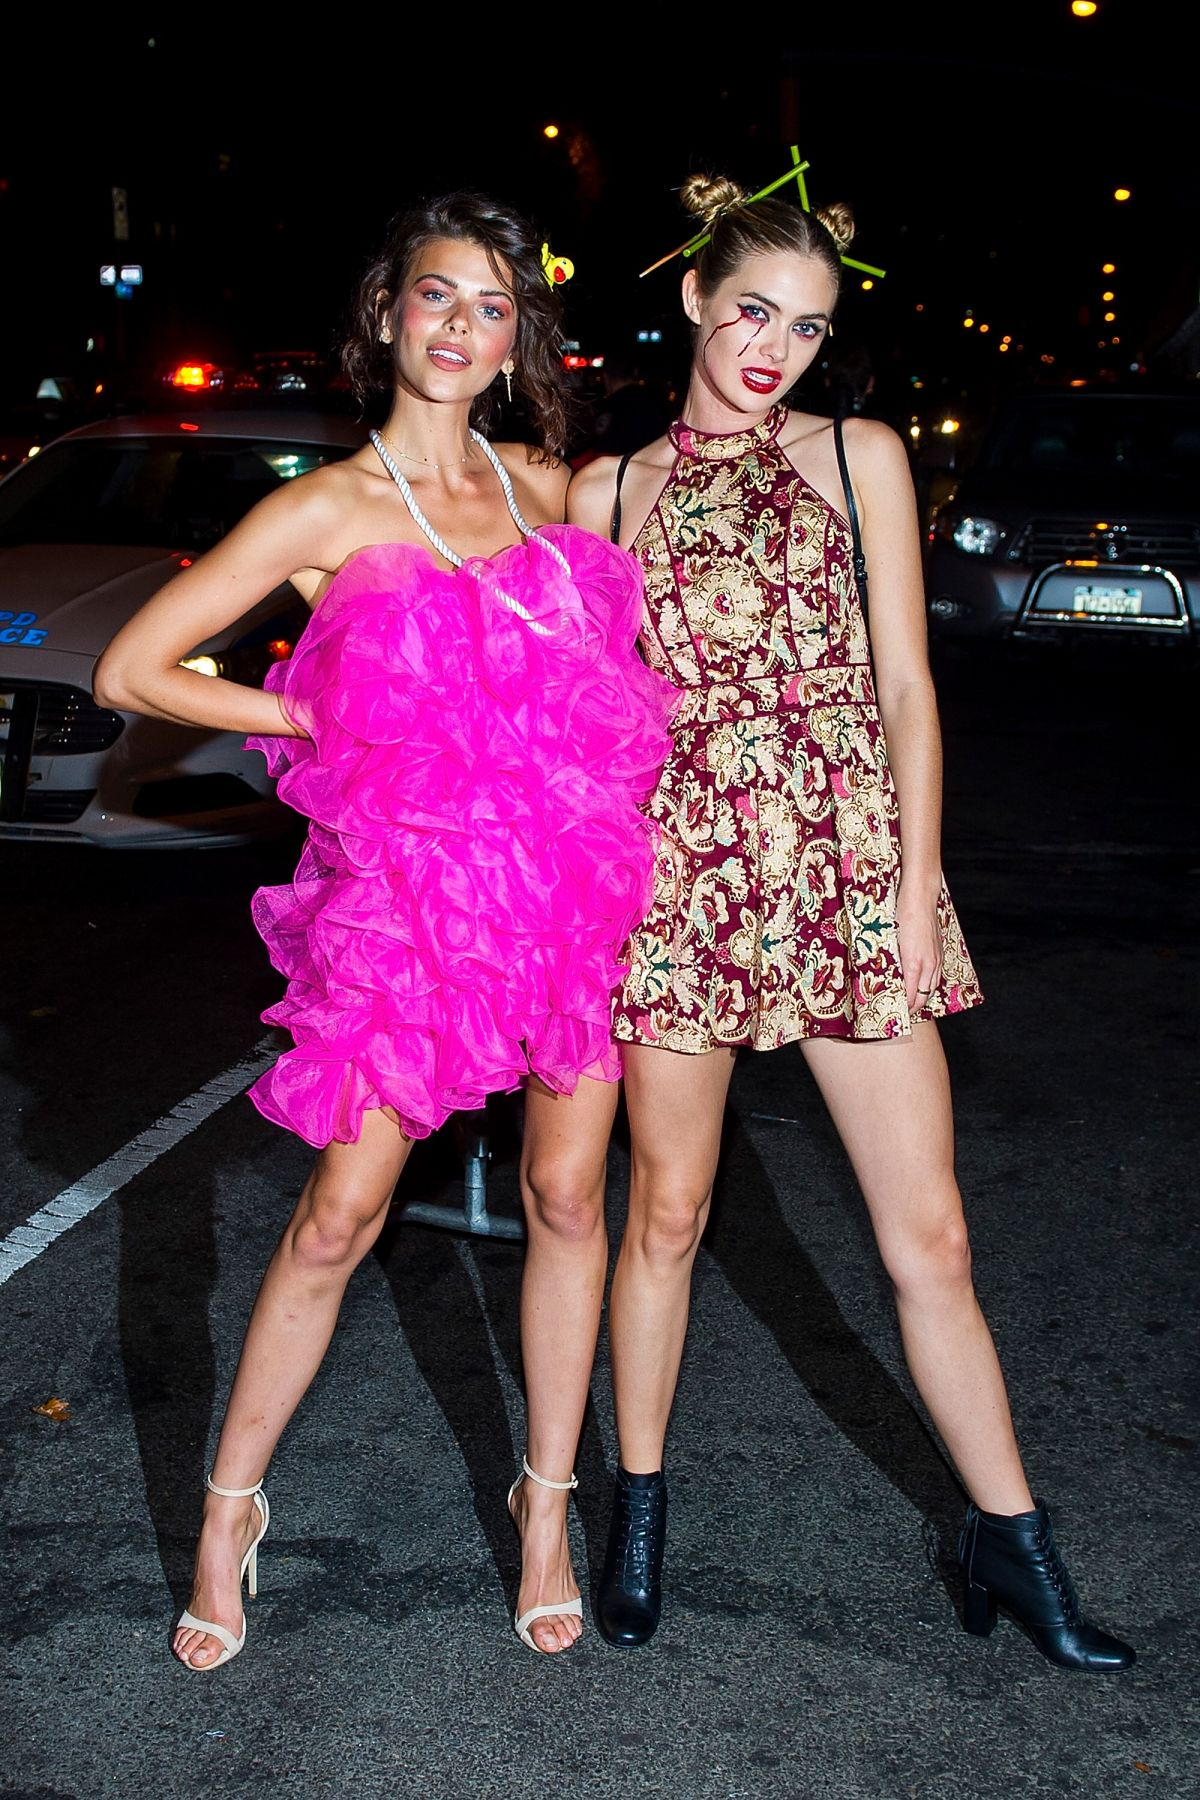 Georgia Fowler and Megan Williams are seen In Chelsea, New York